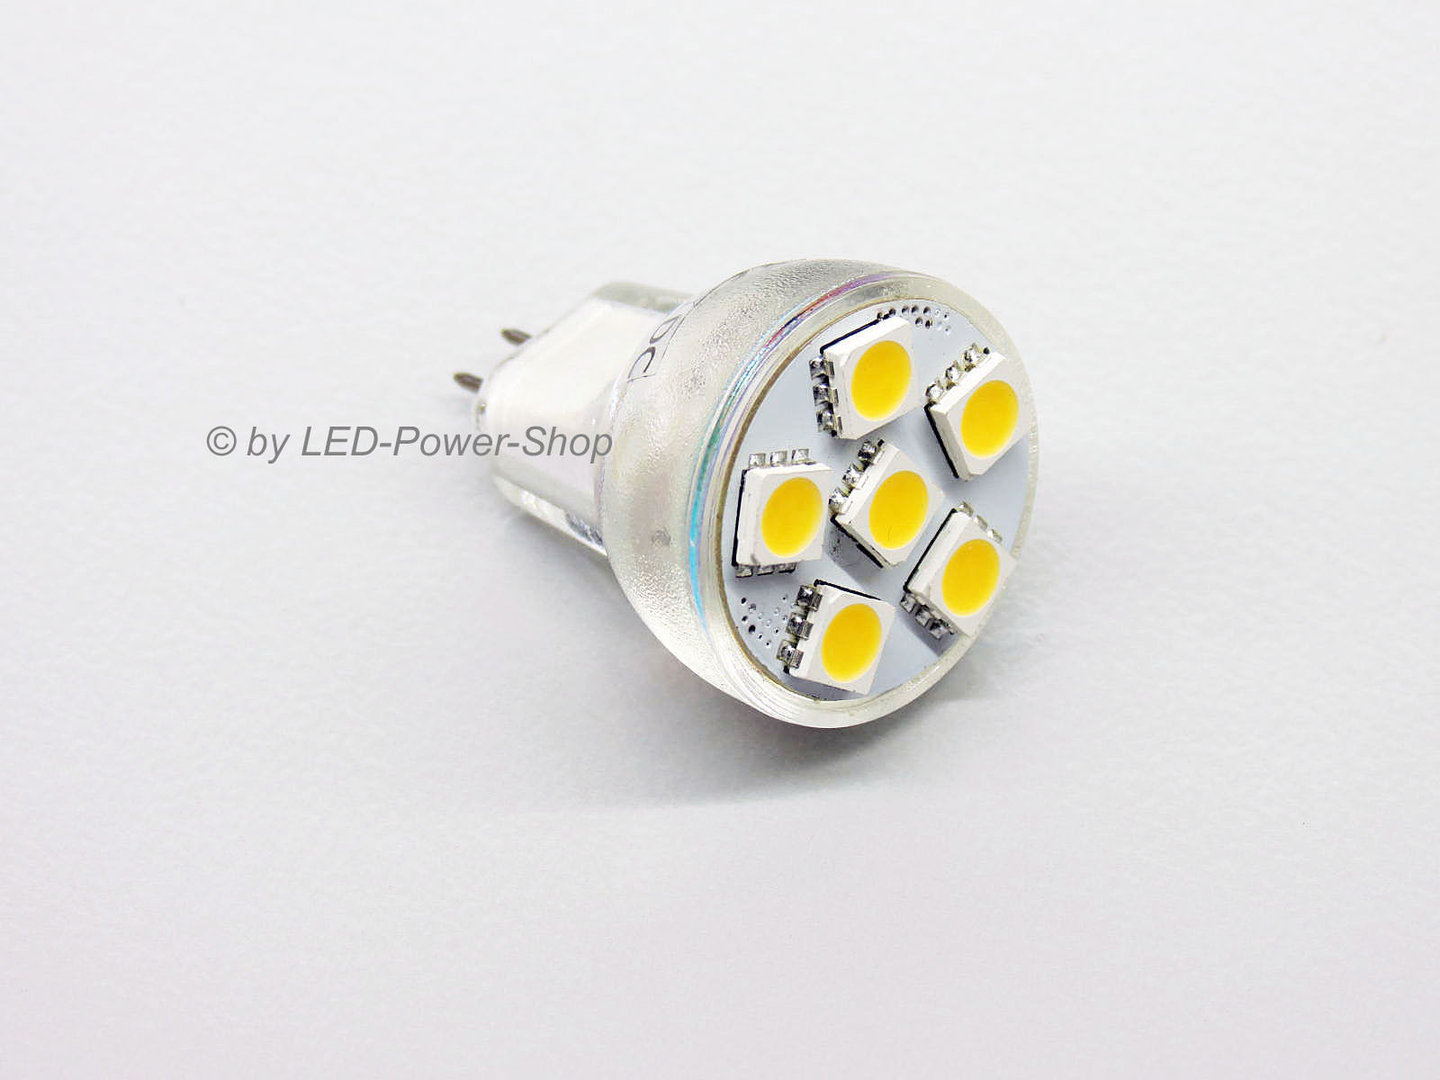 MR8 6 LED SMD 5mm 10-30V warmweiß